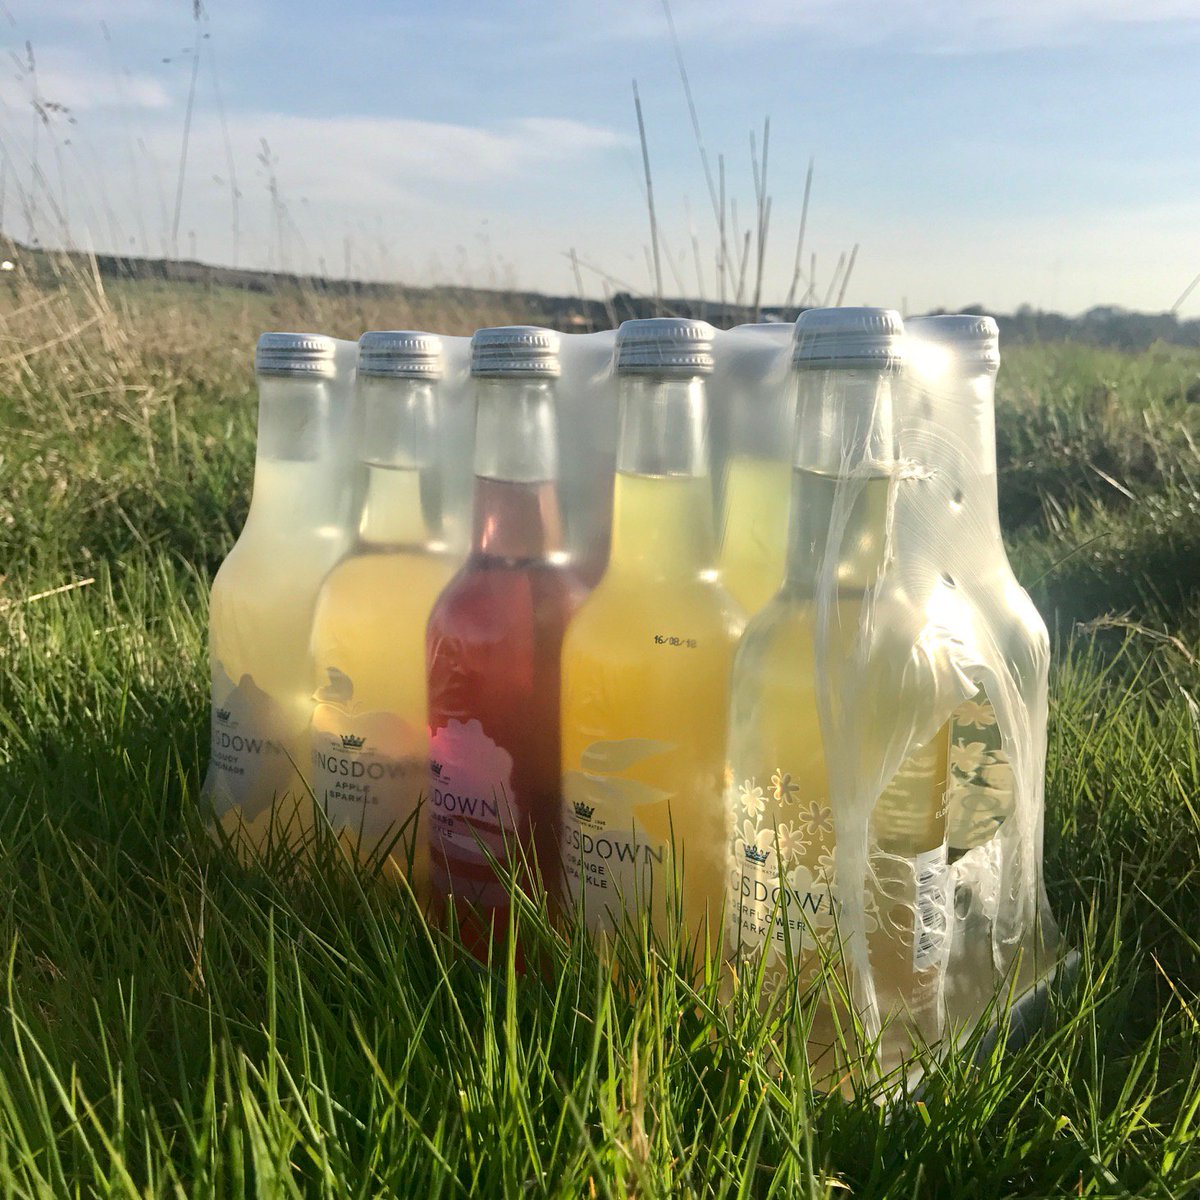 It's #May the perfect month to stock up on your favourite Kingsdown Sparkles ✨If you're not sure what your favourite is we have a tasty sample pack of all our flavours available online #MayDay #1stMay https://www.kingsdownwater.co.uk/buy-online